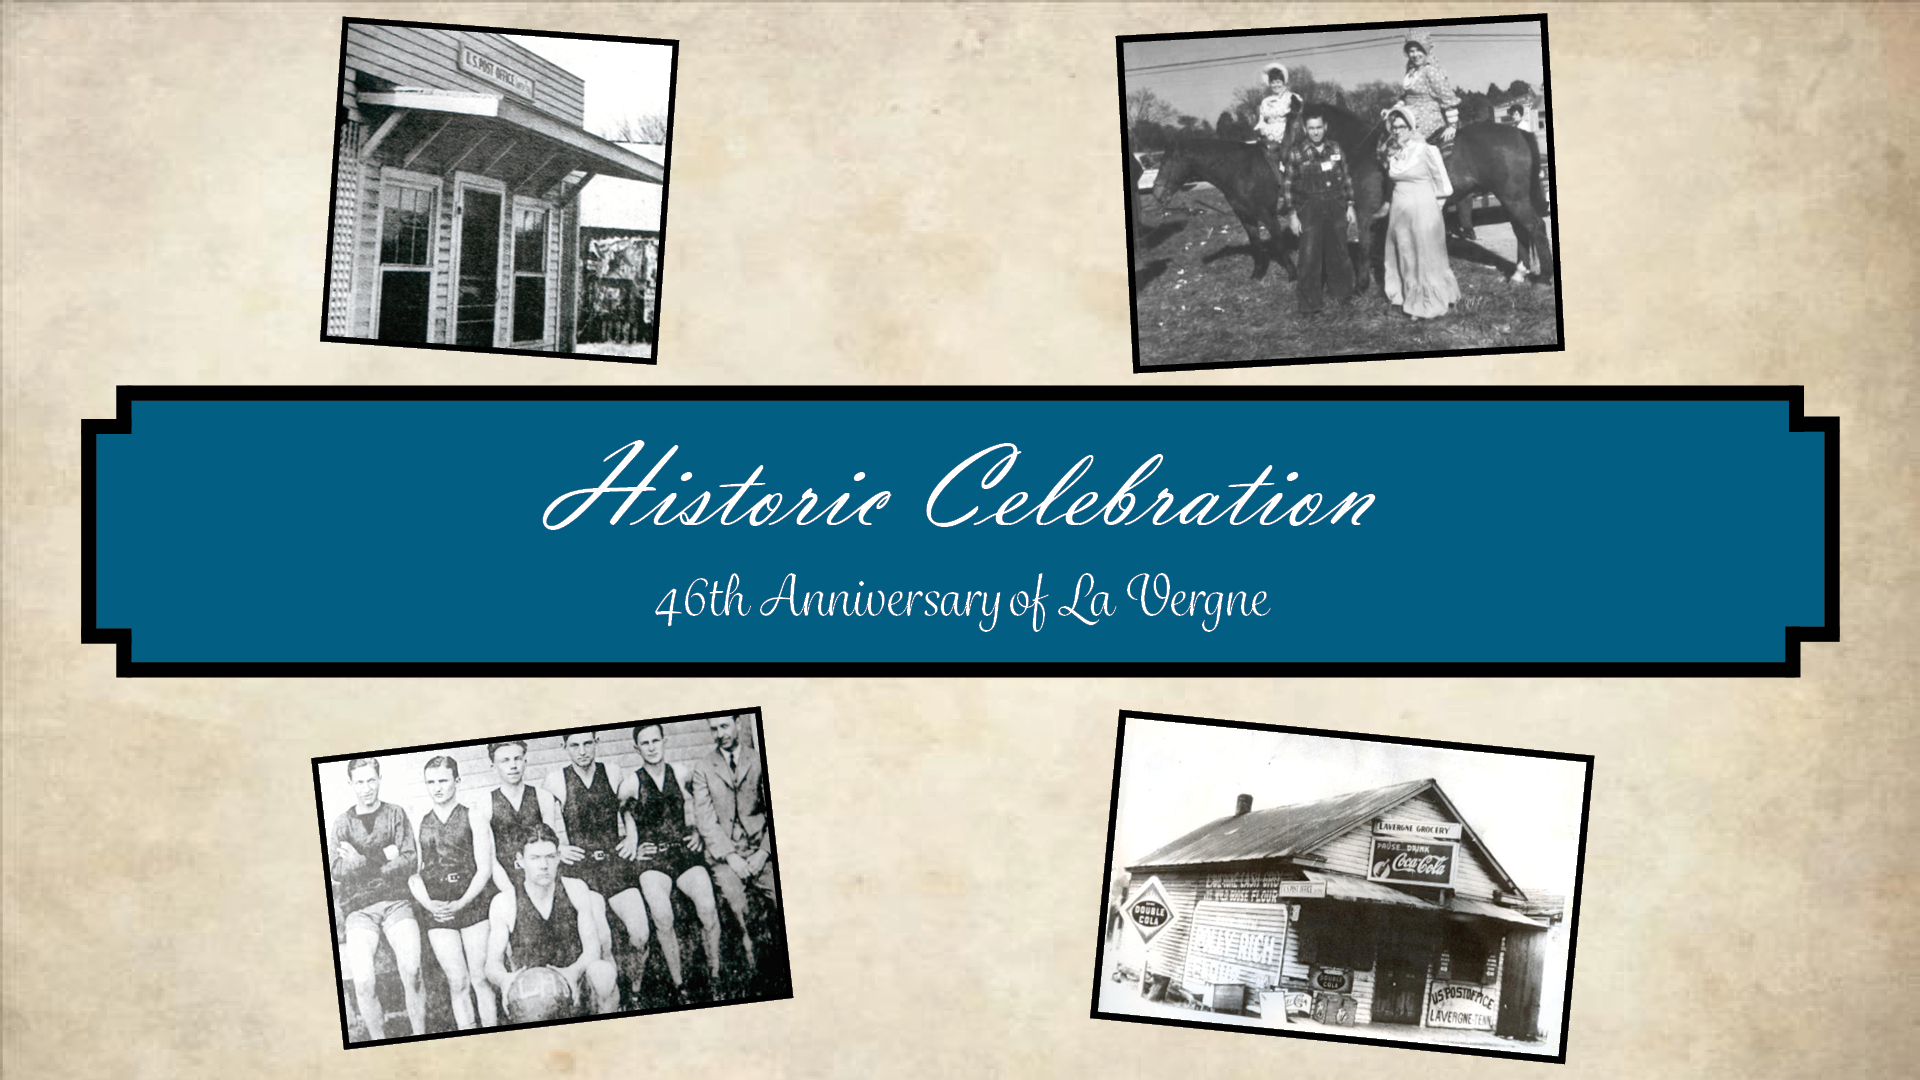 Historic Celebration this Saturday - La Vergne's 46th Anniversary